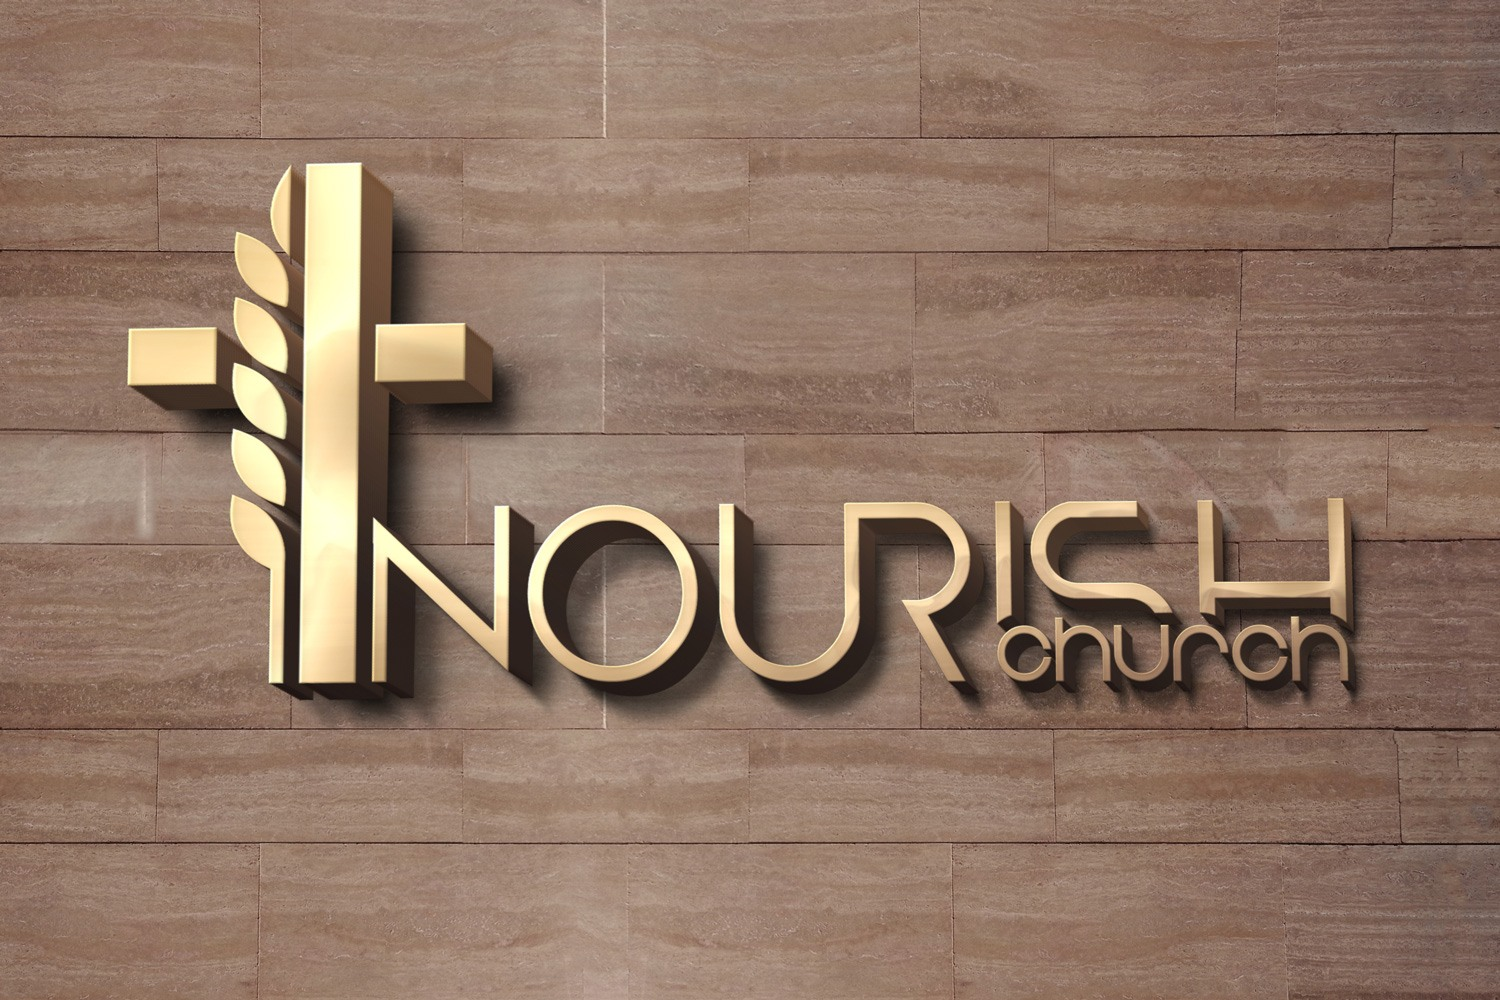 church logo images of a nondenominational church branding